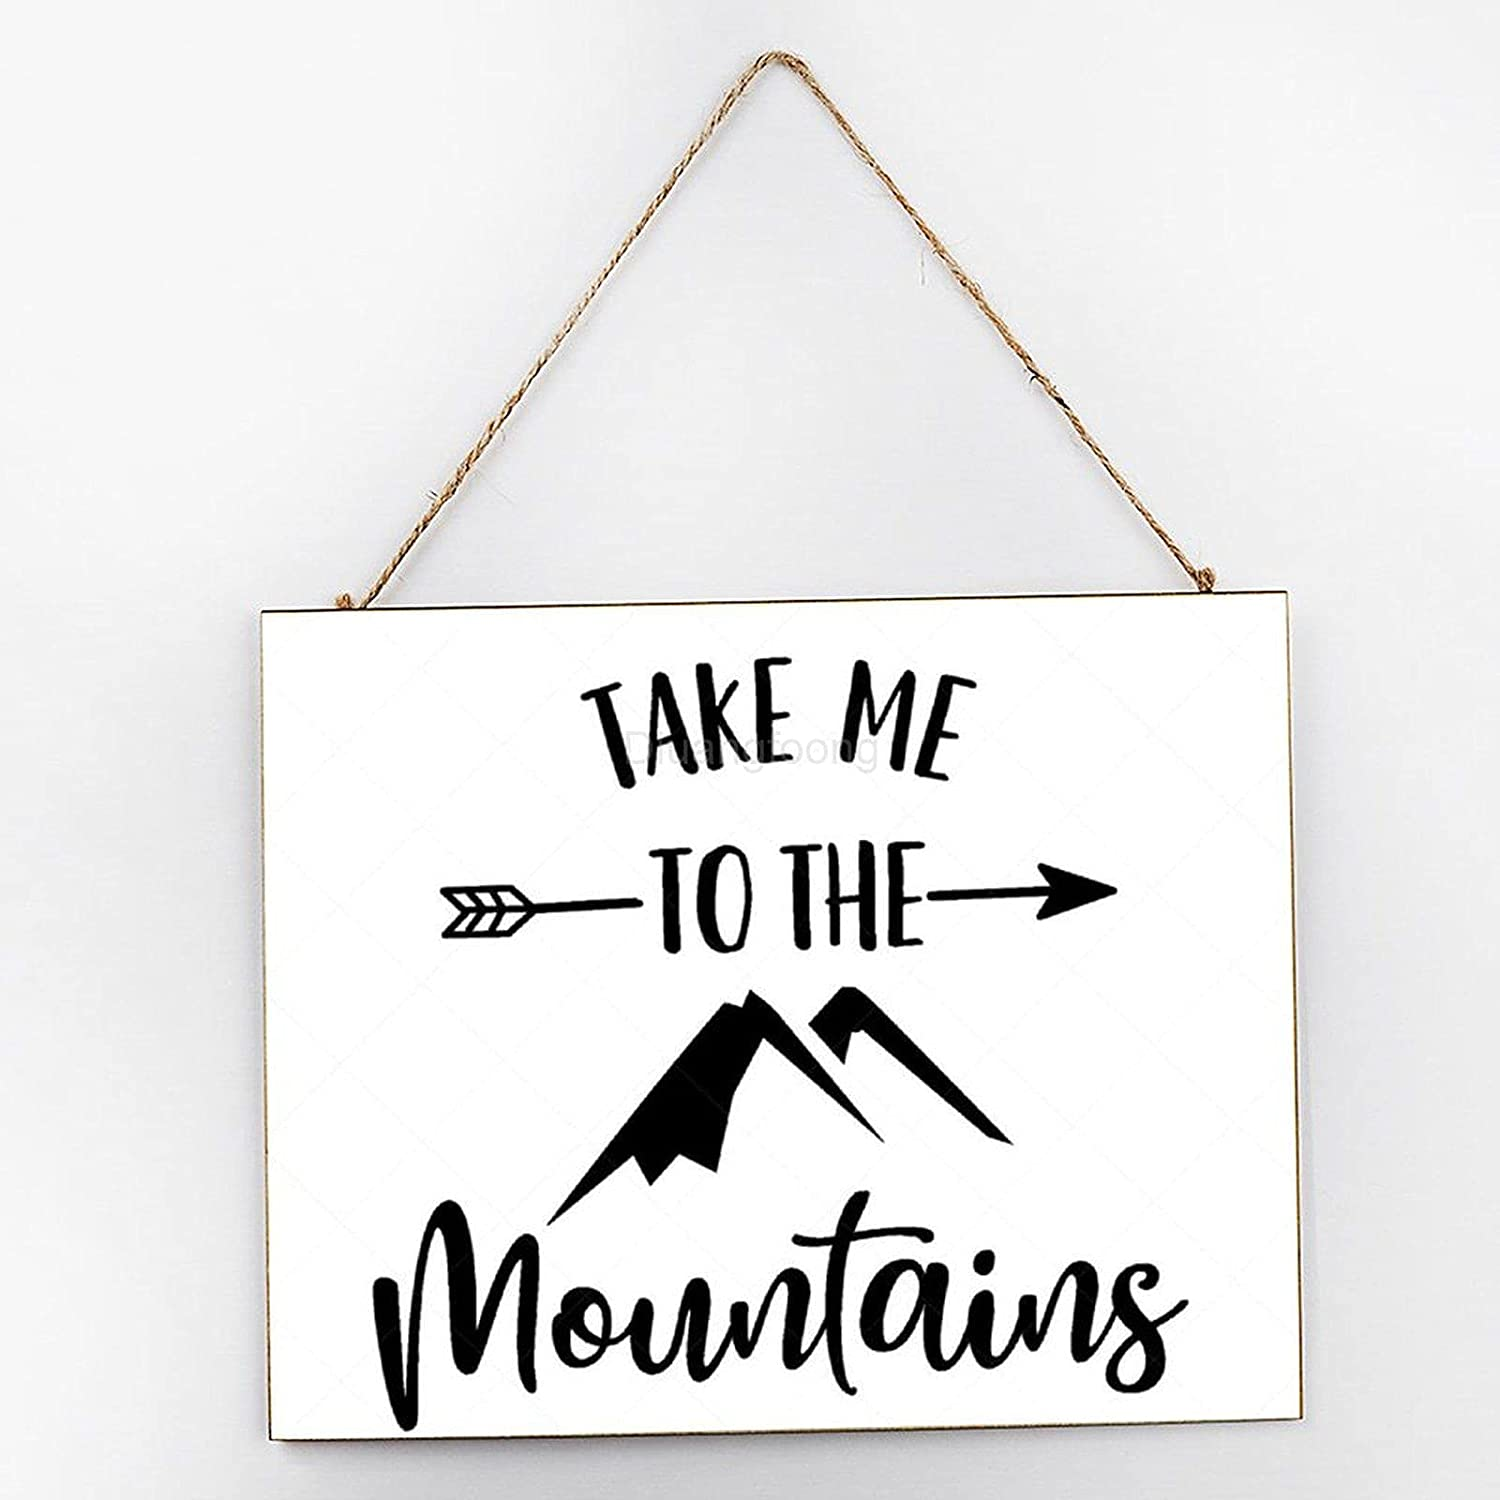 Diuangfoong Take Me to The Mountains Inspirational Wall Art, Rustic Wooden Signs, Wooden Signs for Home Decor Kitchen Living Room Bathroom, Wood Hanger Frame 10x12x0.2 Inch